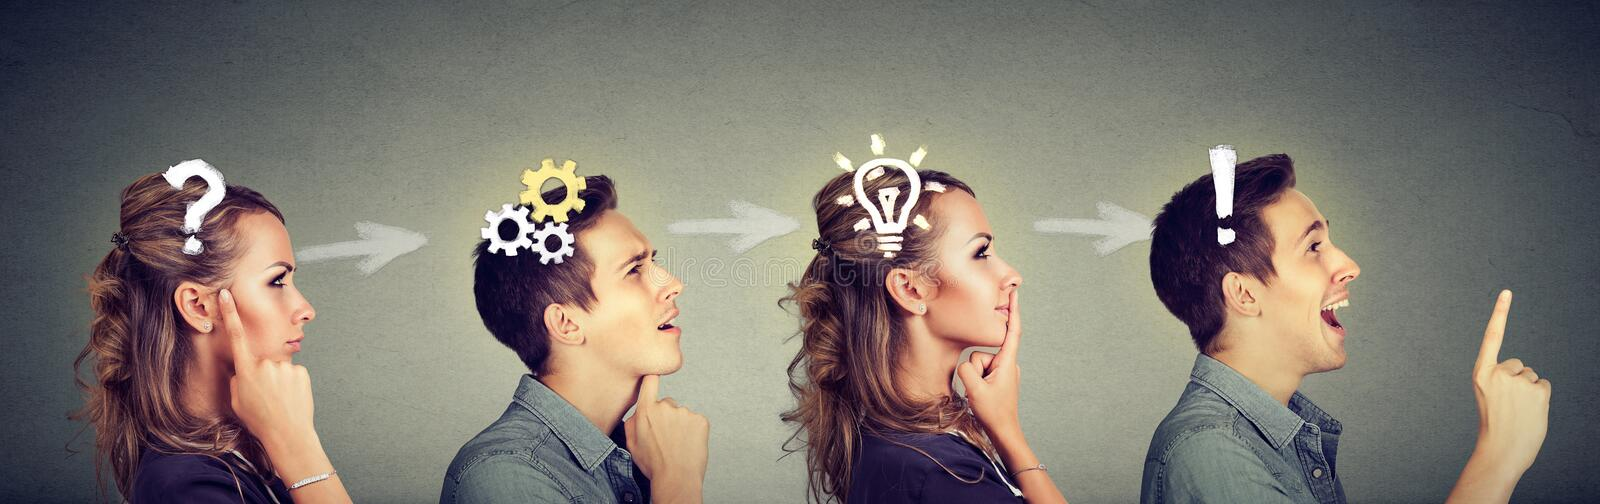 Thoughtful man and woman thinking solving together a common problem royalty free stock photo